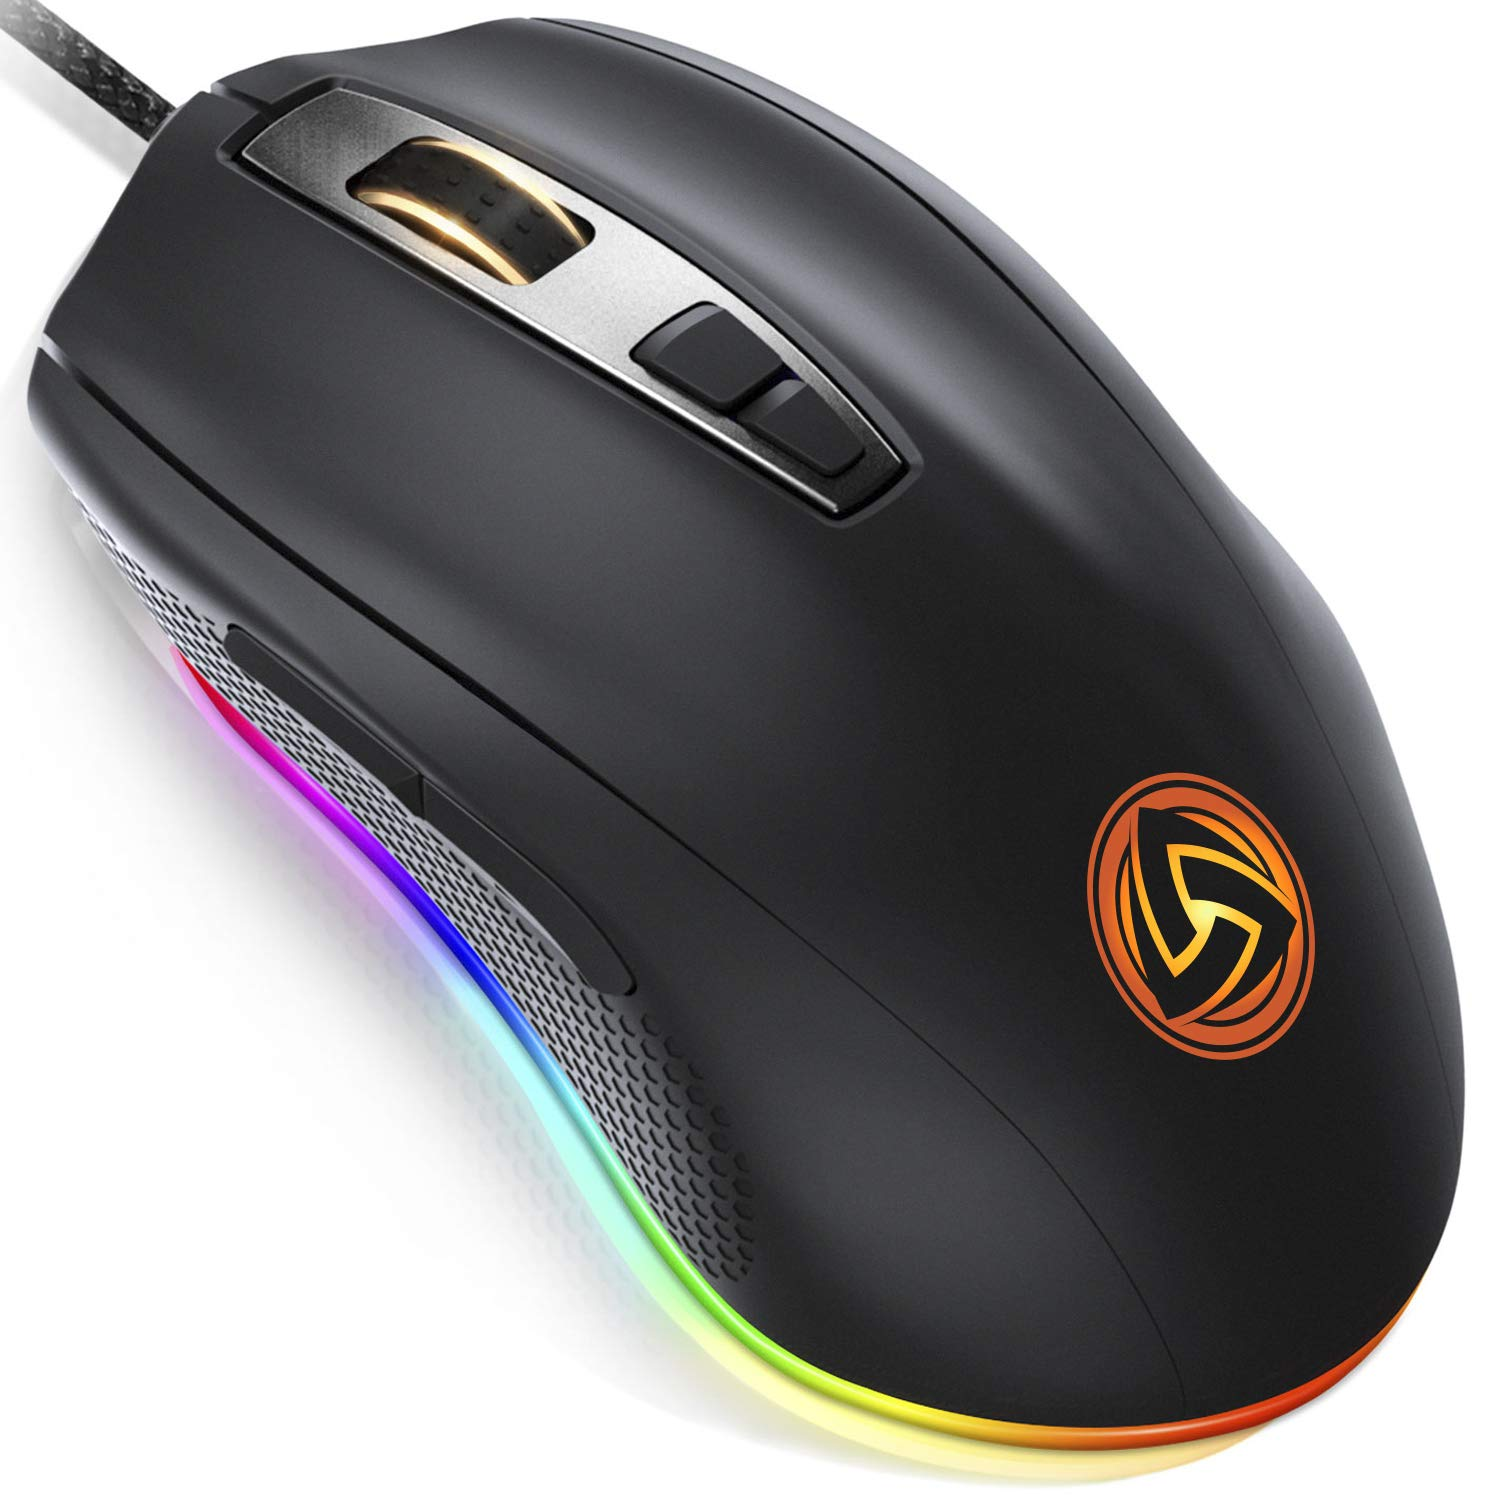 LUDOS FLAMMA Gaming Mouse RGB 10,000 DPI 7 Programmable Buttons Wired USB Ergonomic Gaming Mice